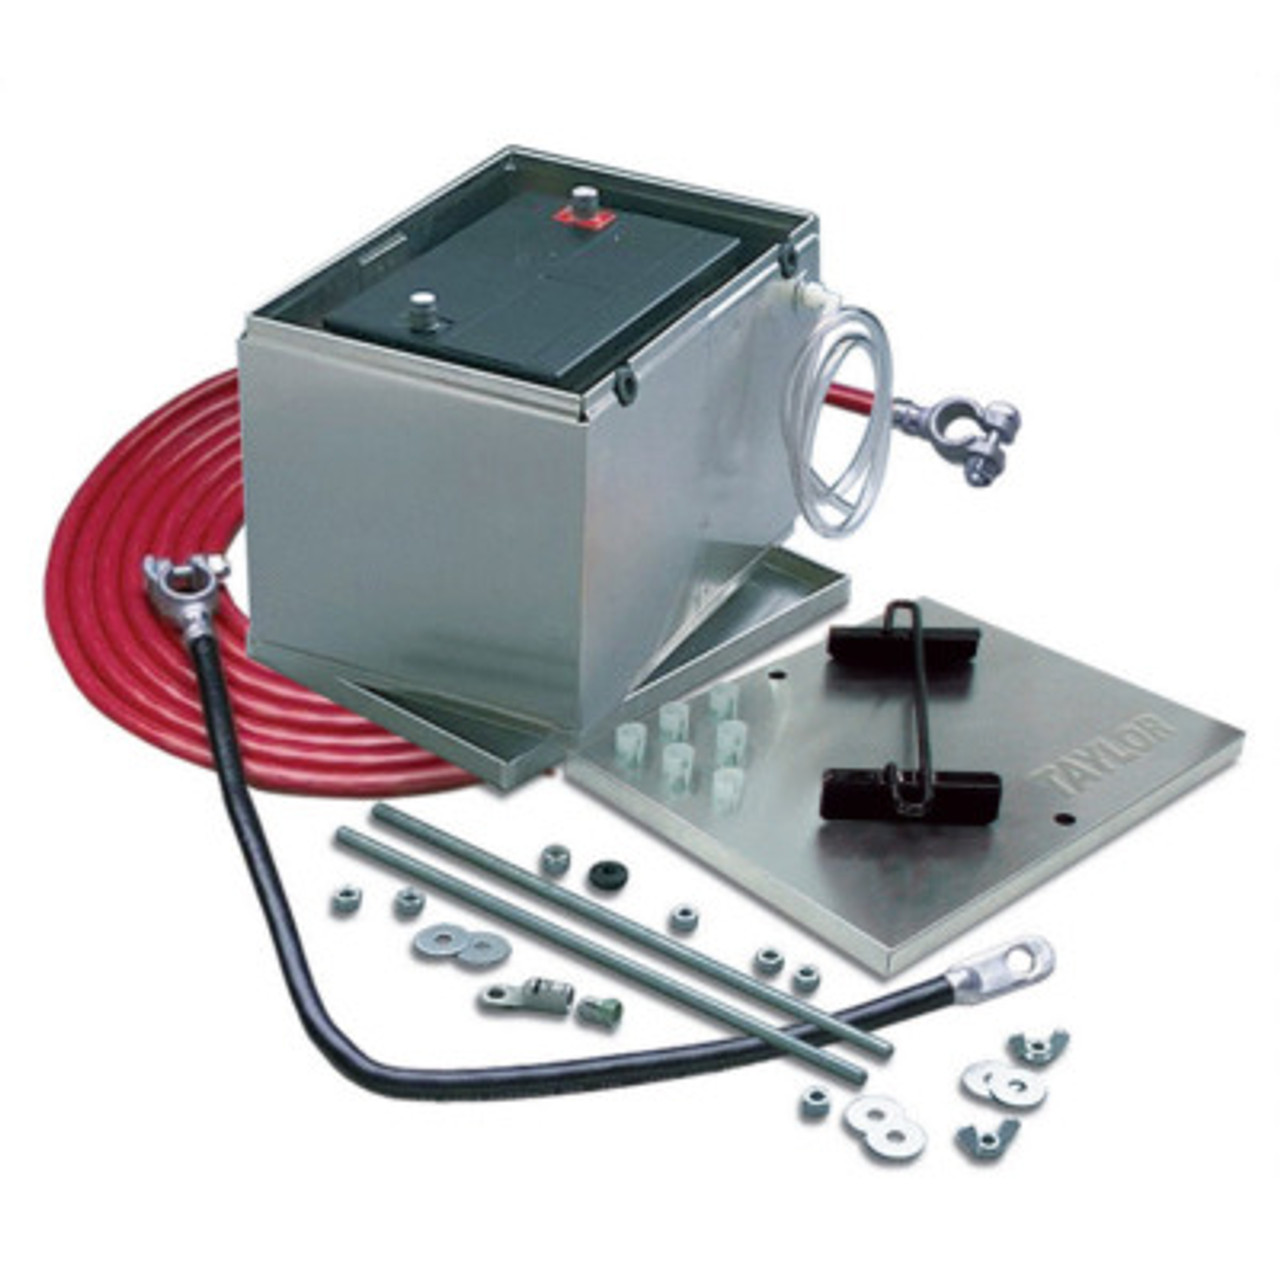 TAY48001, Battery Relocation Kit, 13-1/2 x 9-1/2 x 10 in, Aluminum, 3 Piece Box, 2 Gauge Cables, 16 ft Red / 20 in Black, NHRA Compliant, Kit